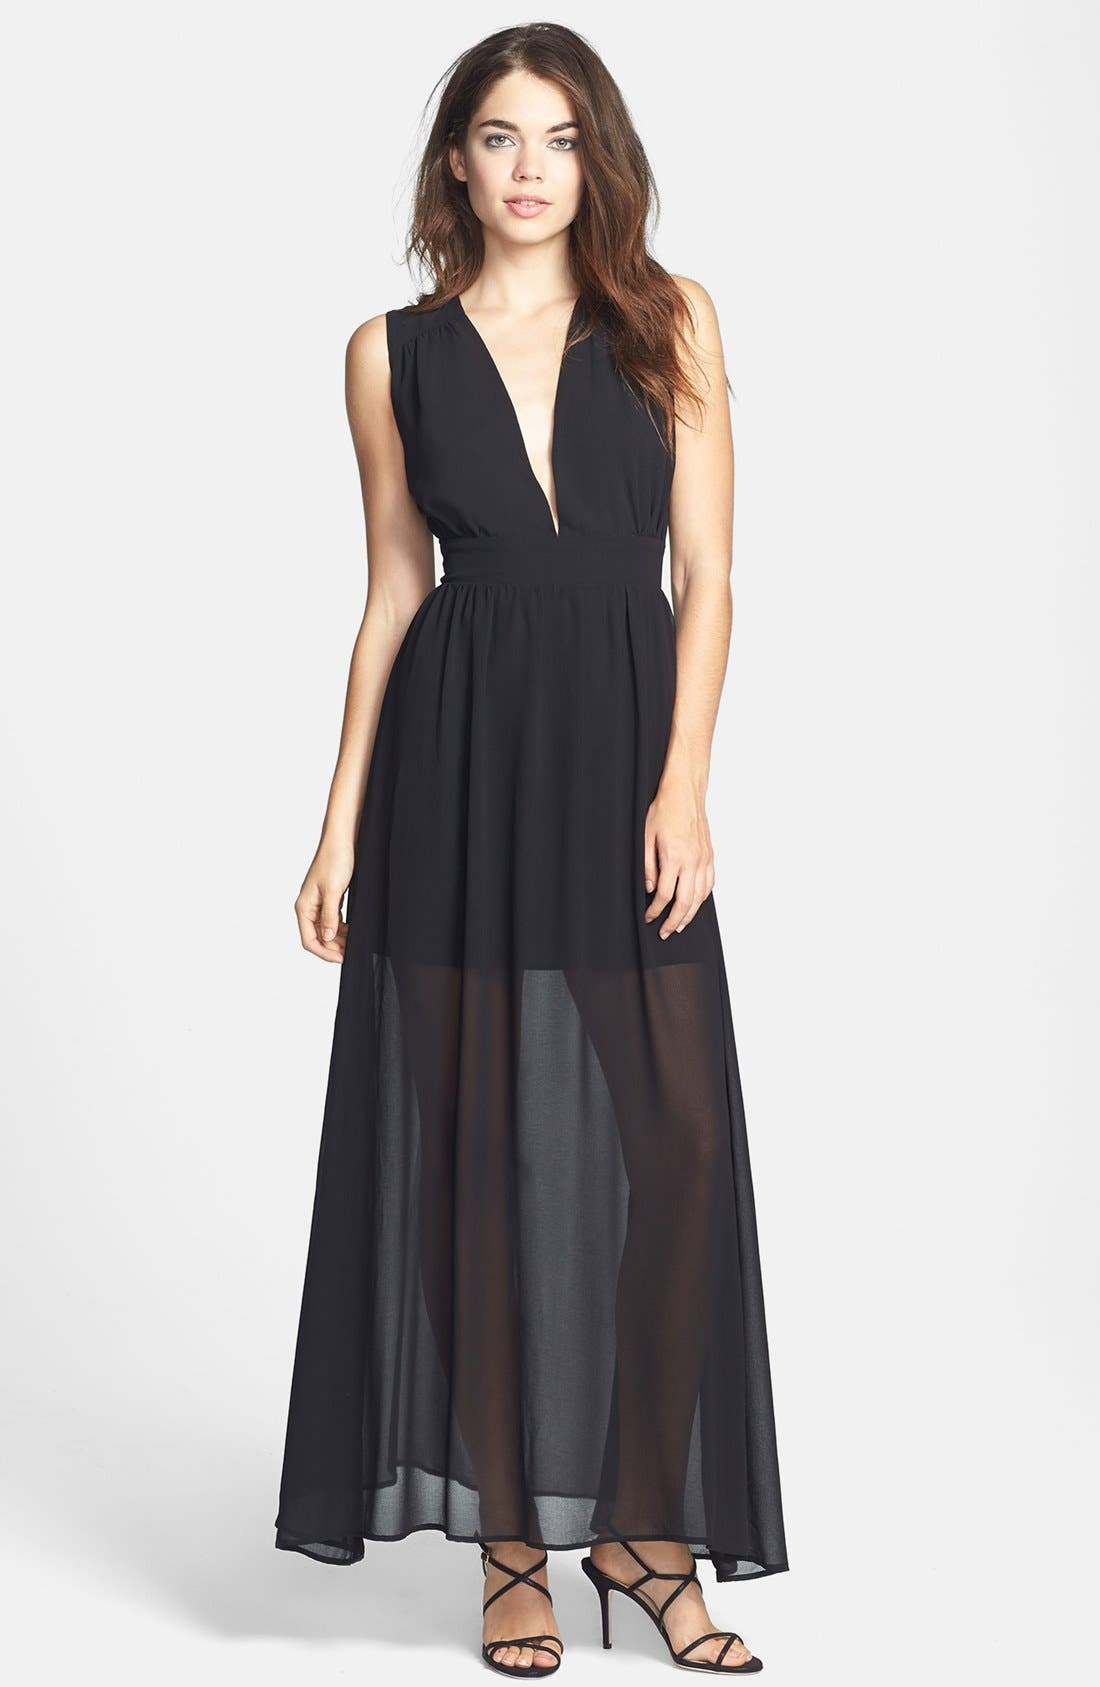 'Cold Desert' Embroidered Back Chiffon Maxi Dress, Main, color, 001